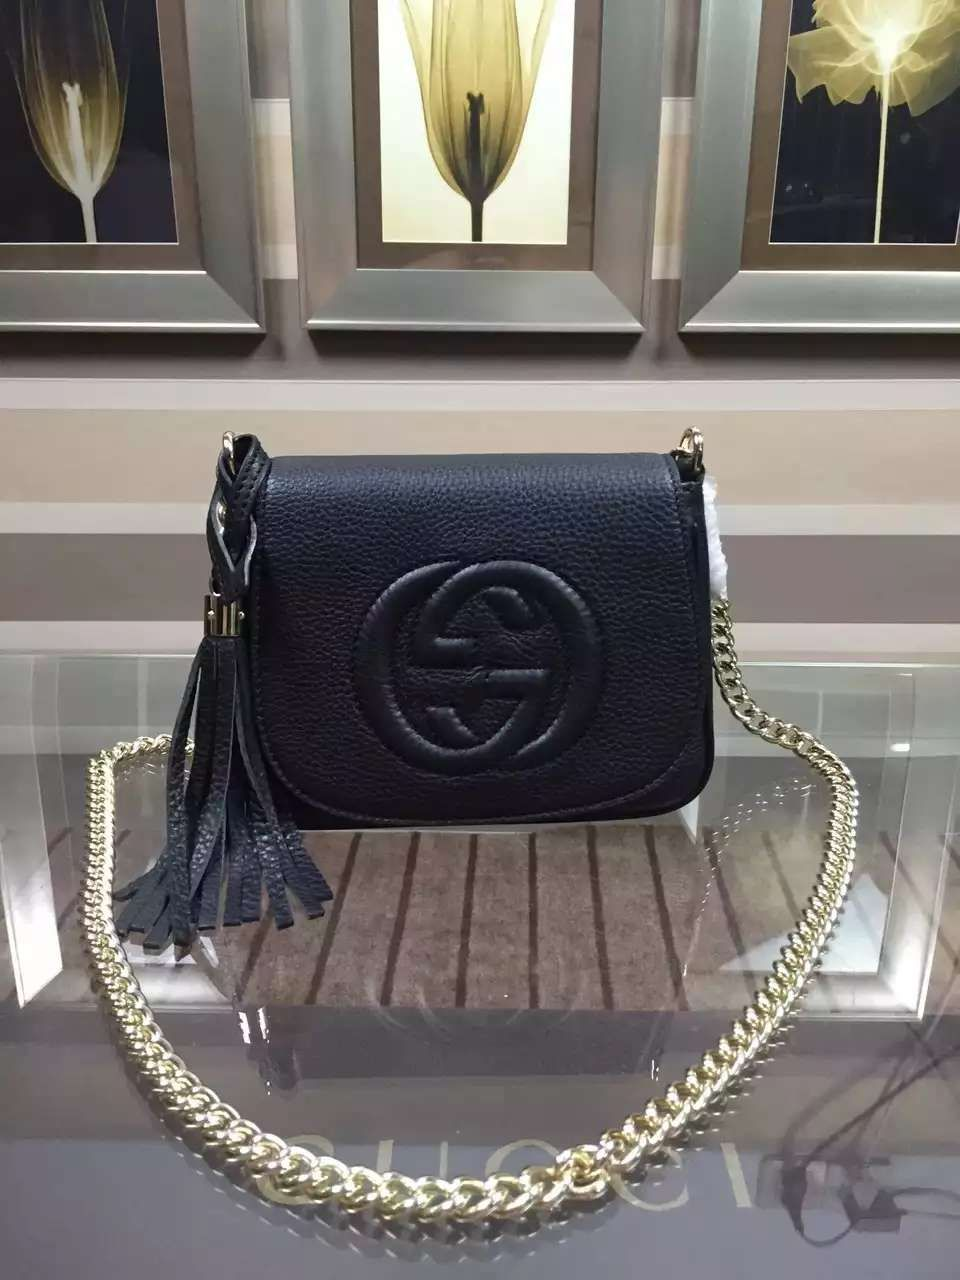 a4325e3943951 gucci Bag, ID   45302(FORSALE a yybags.com), gucci black leather ...